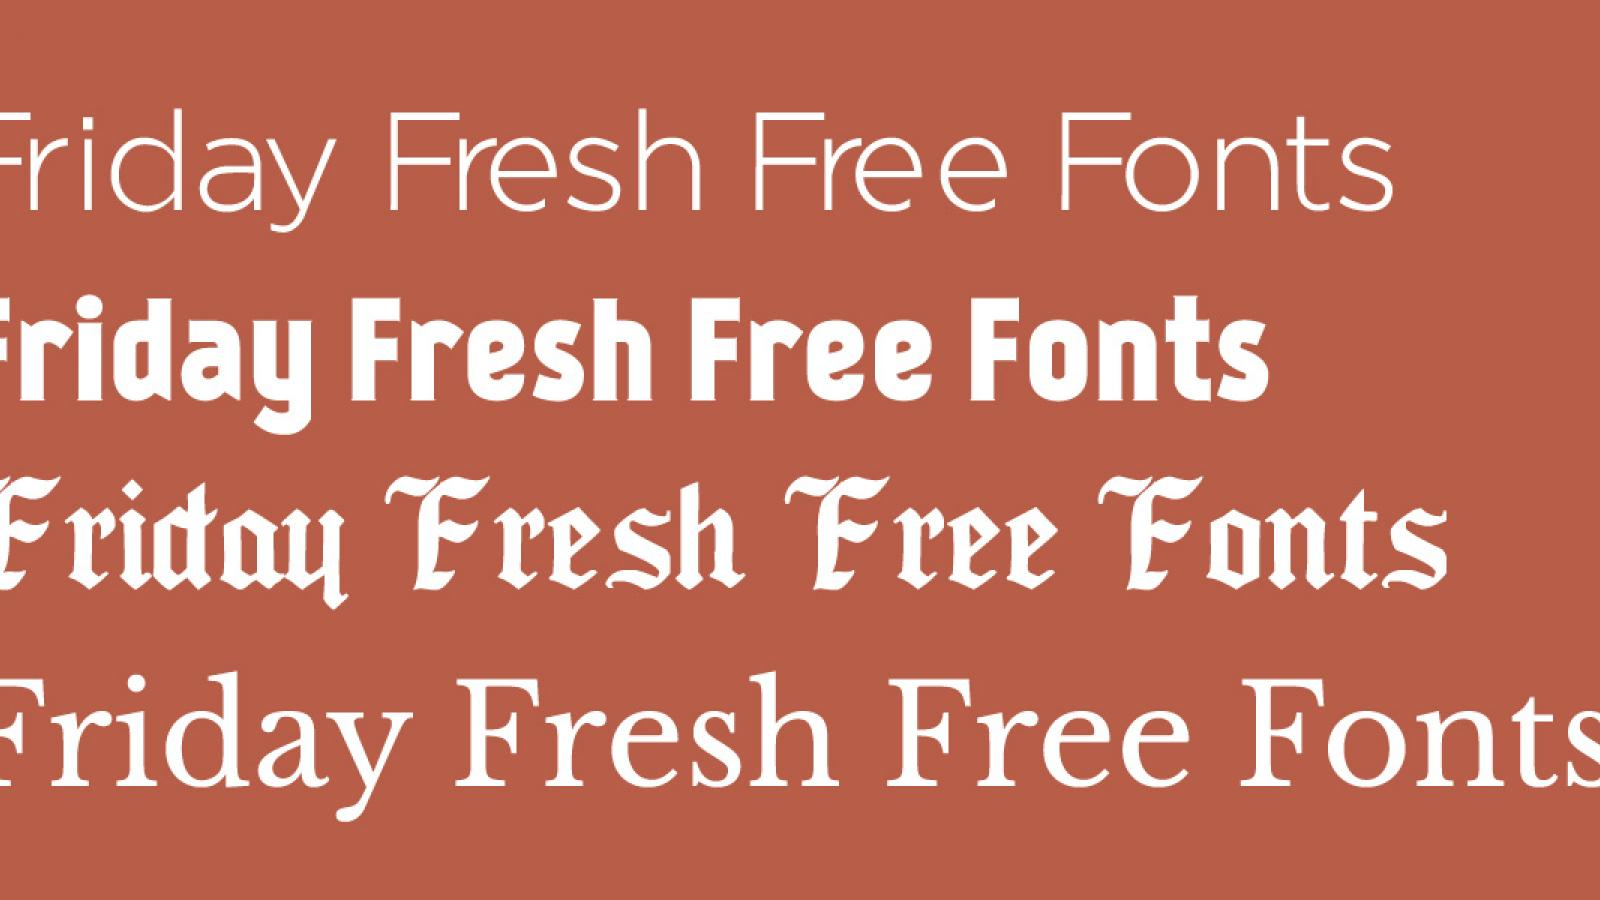 Friday Fresh Free Fonts - Regencie, Kankin, ...